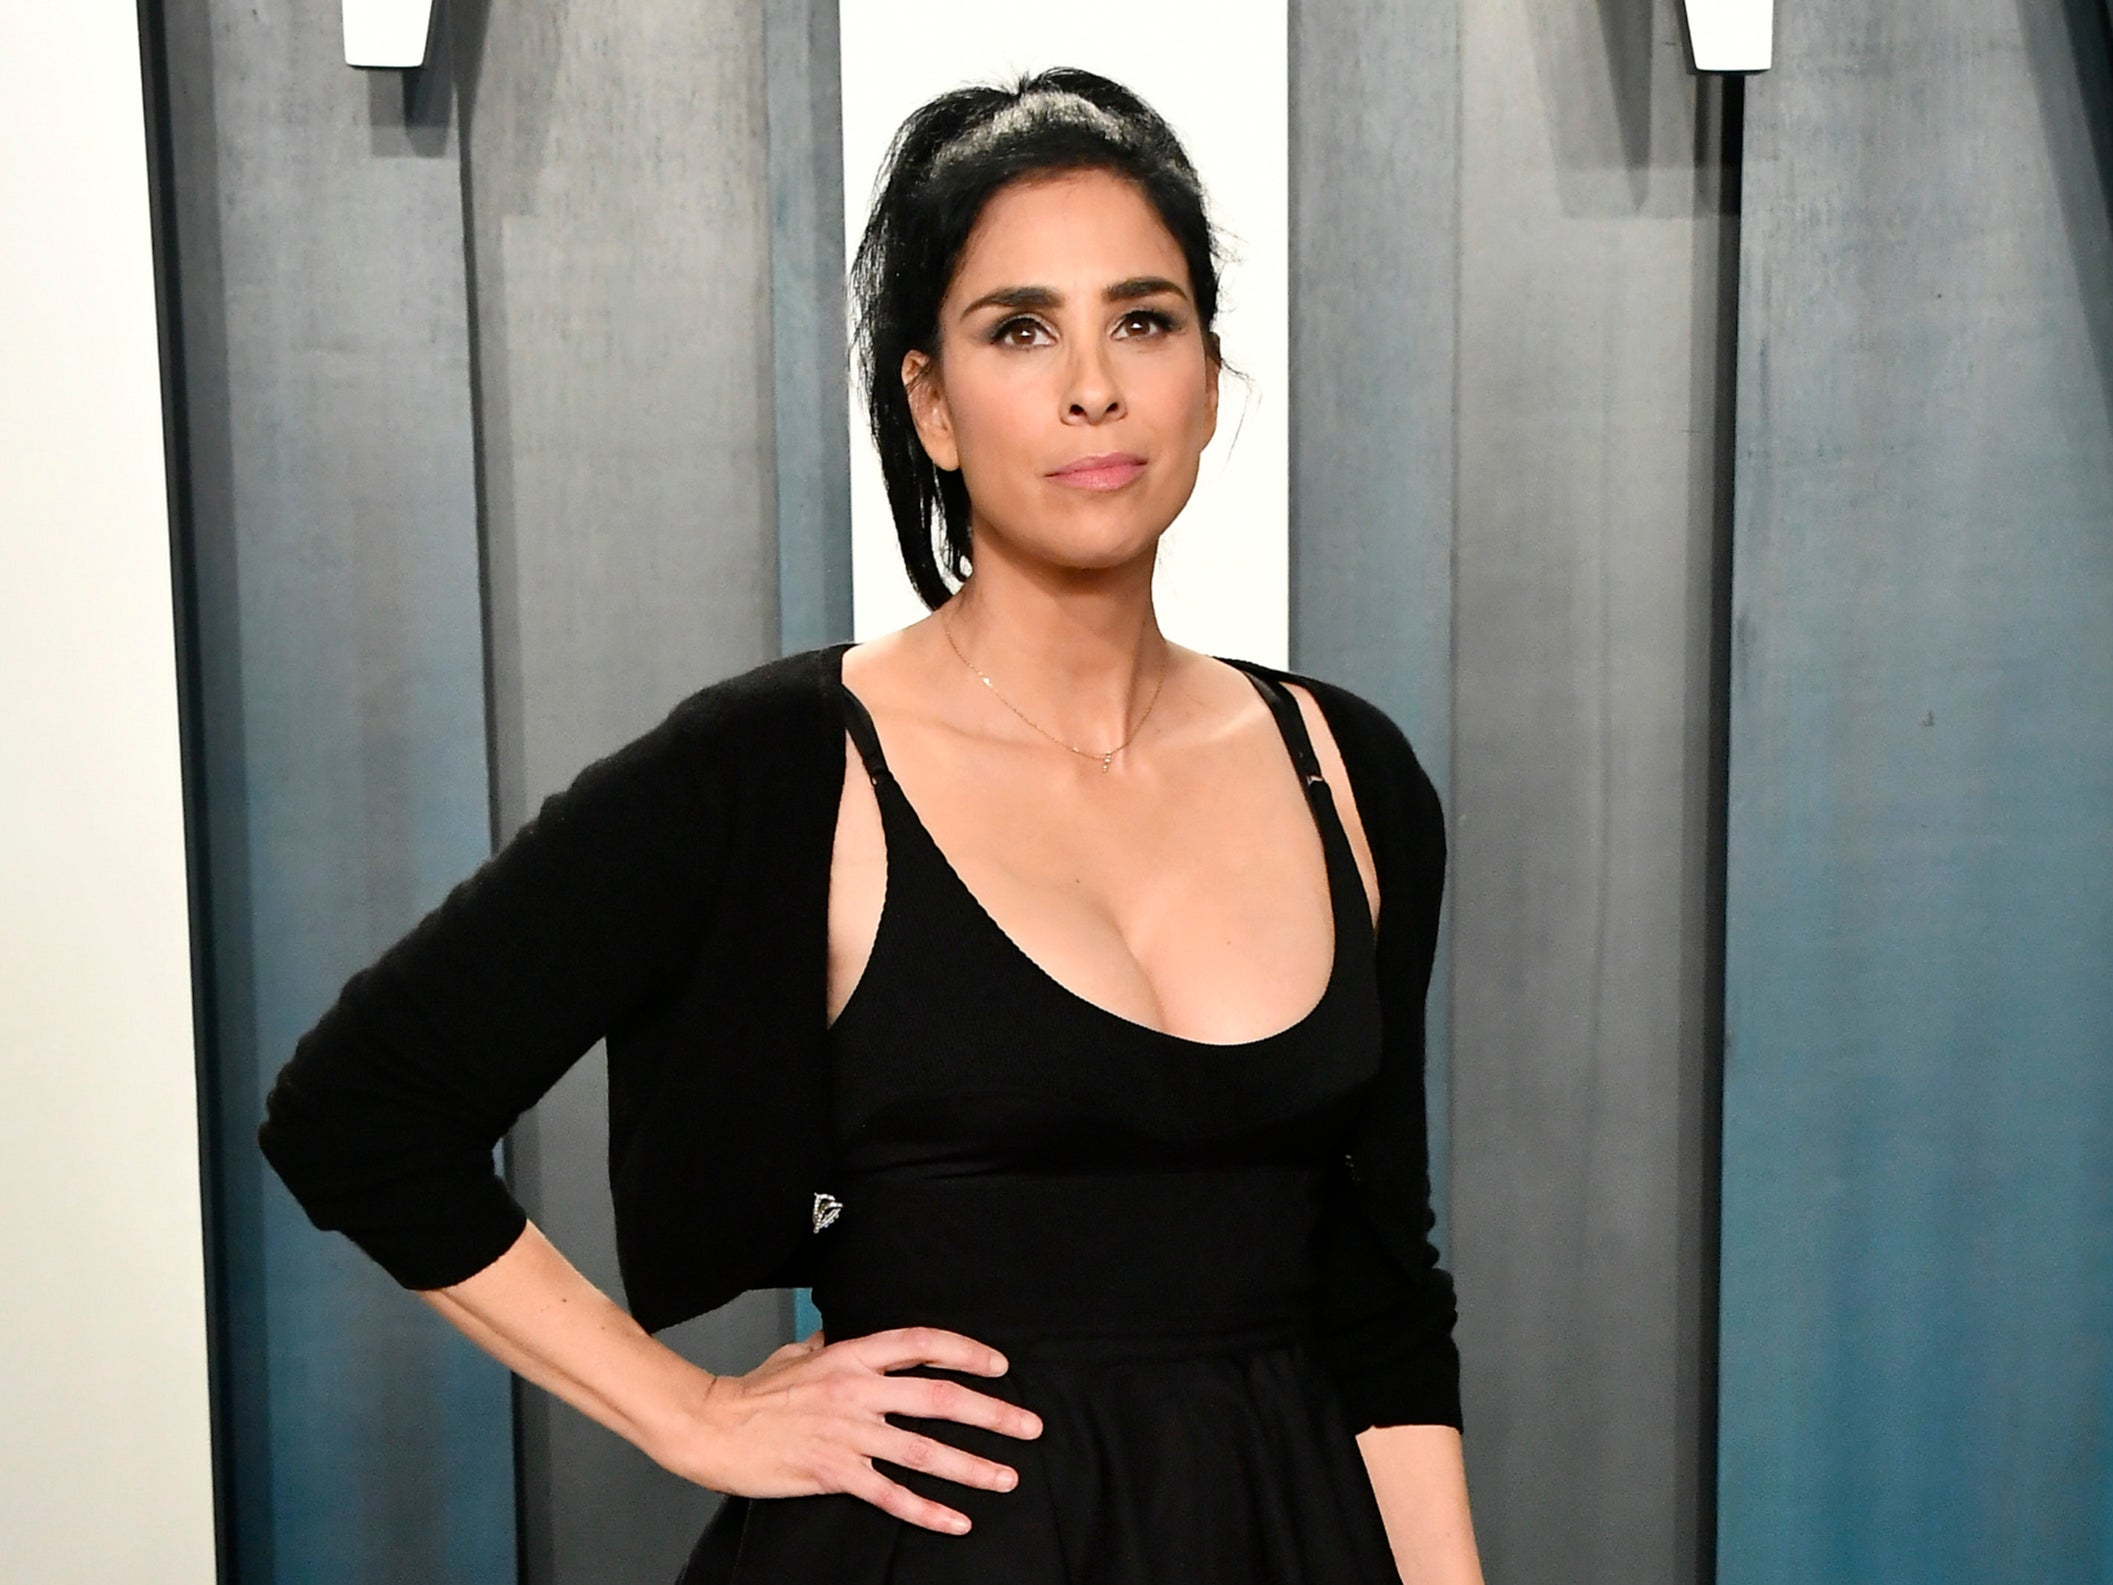 Sarah Silverman argues that 'path to redemption' is needed in 'cancel culture' moments